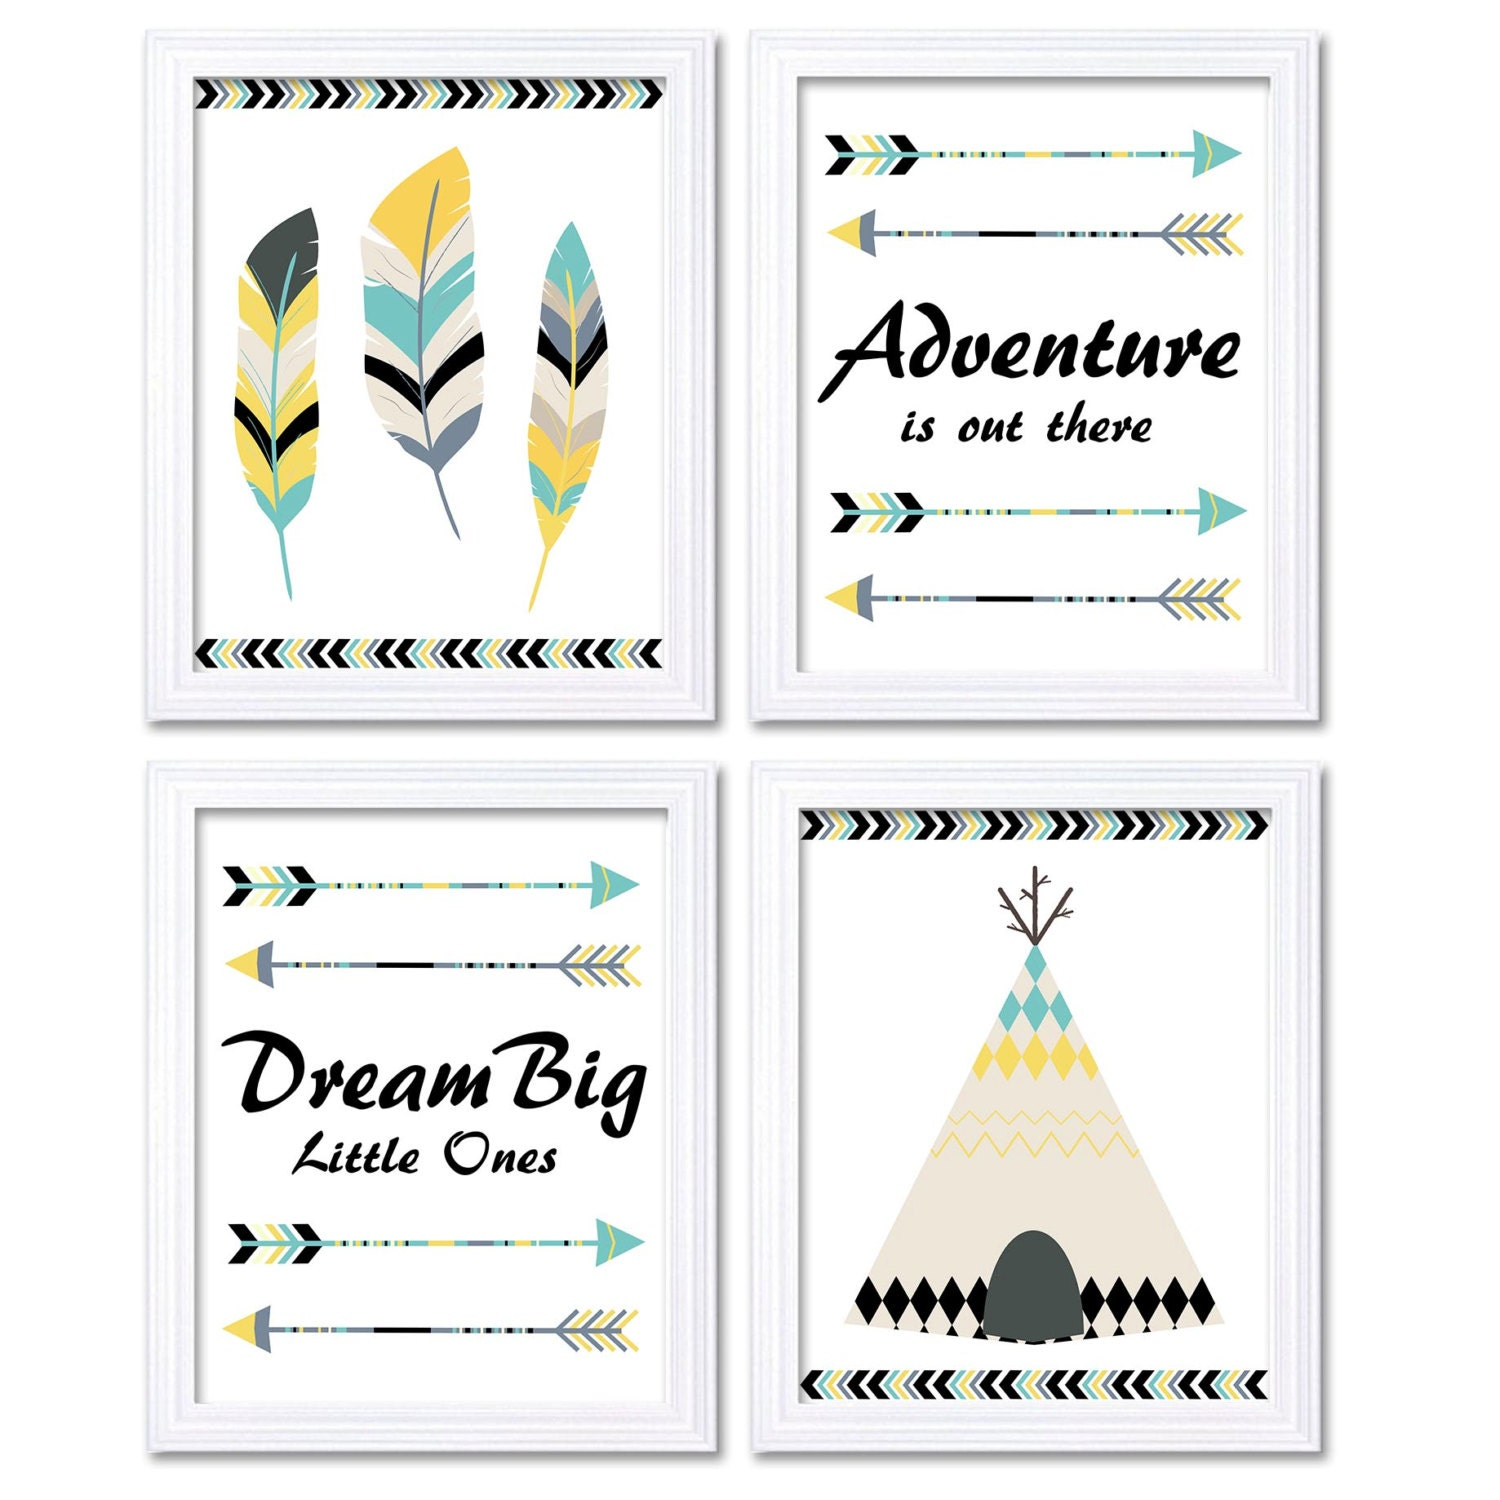 Tribal Nursery Art Print Yellow Turquoise Beige Set of 4 Wall Decor Adventure is Out There Dream Big